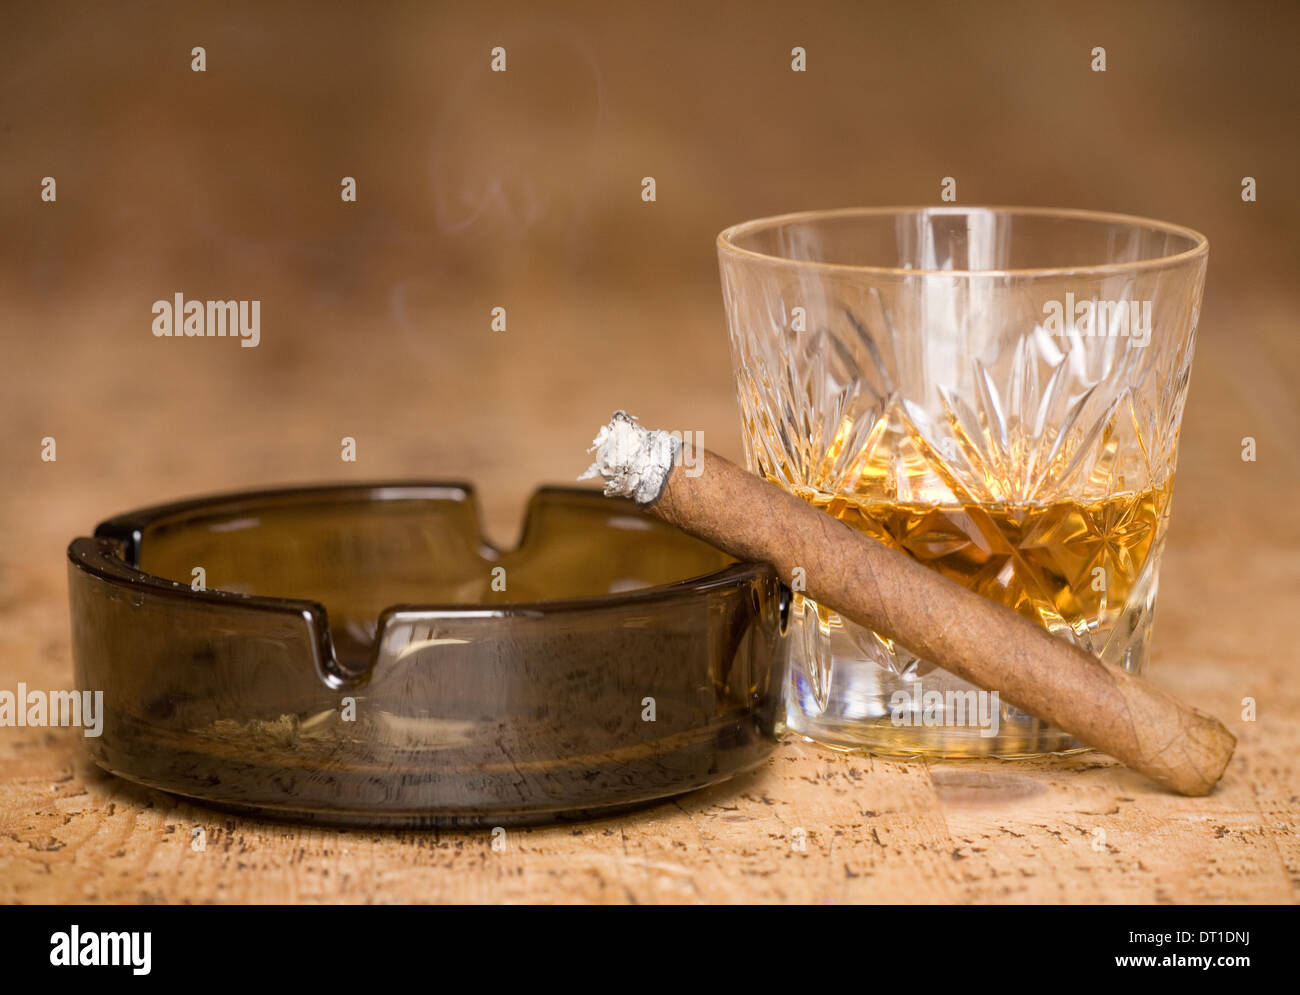 smoking cigars and drinking whisky addiction - Stock Image